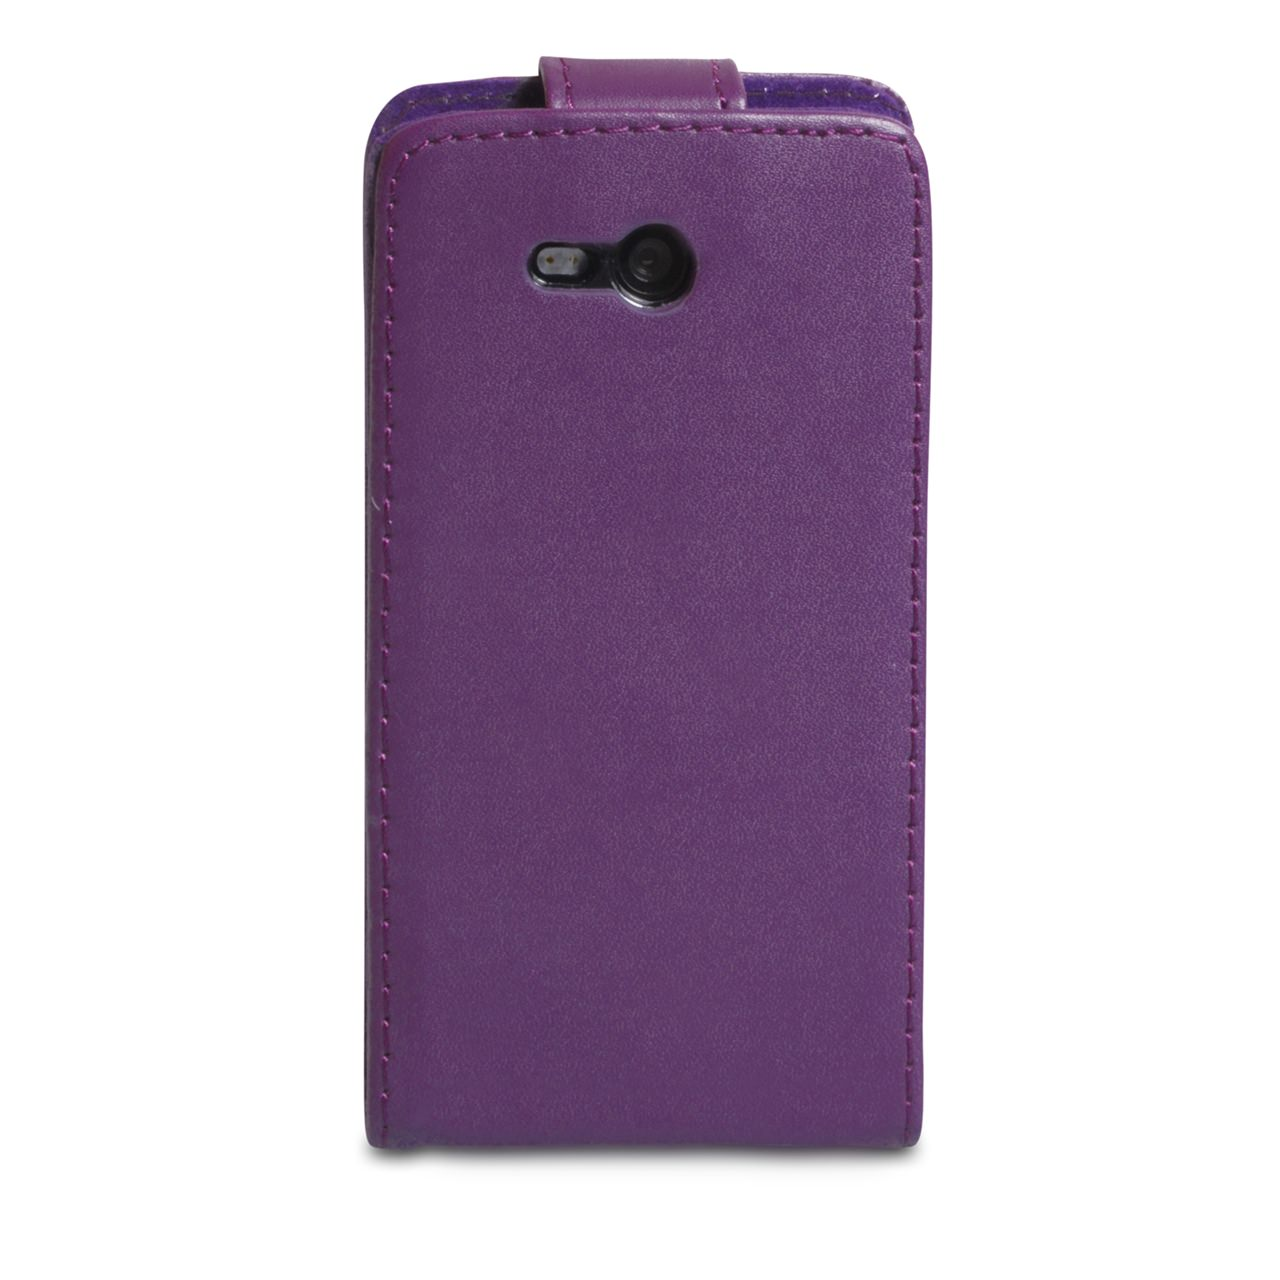 YouSave Accessories Nokia Lumia 820 Leather Effect Flip Case - Purple